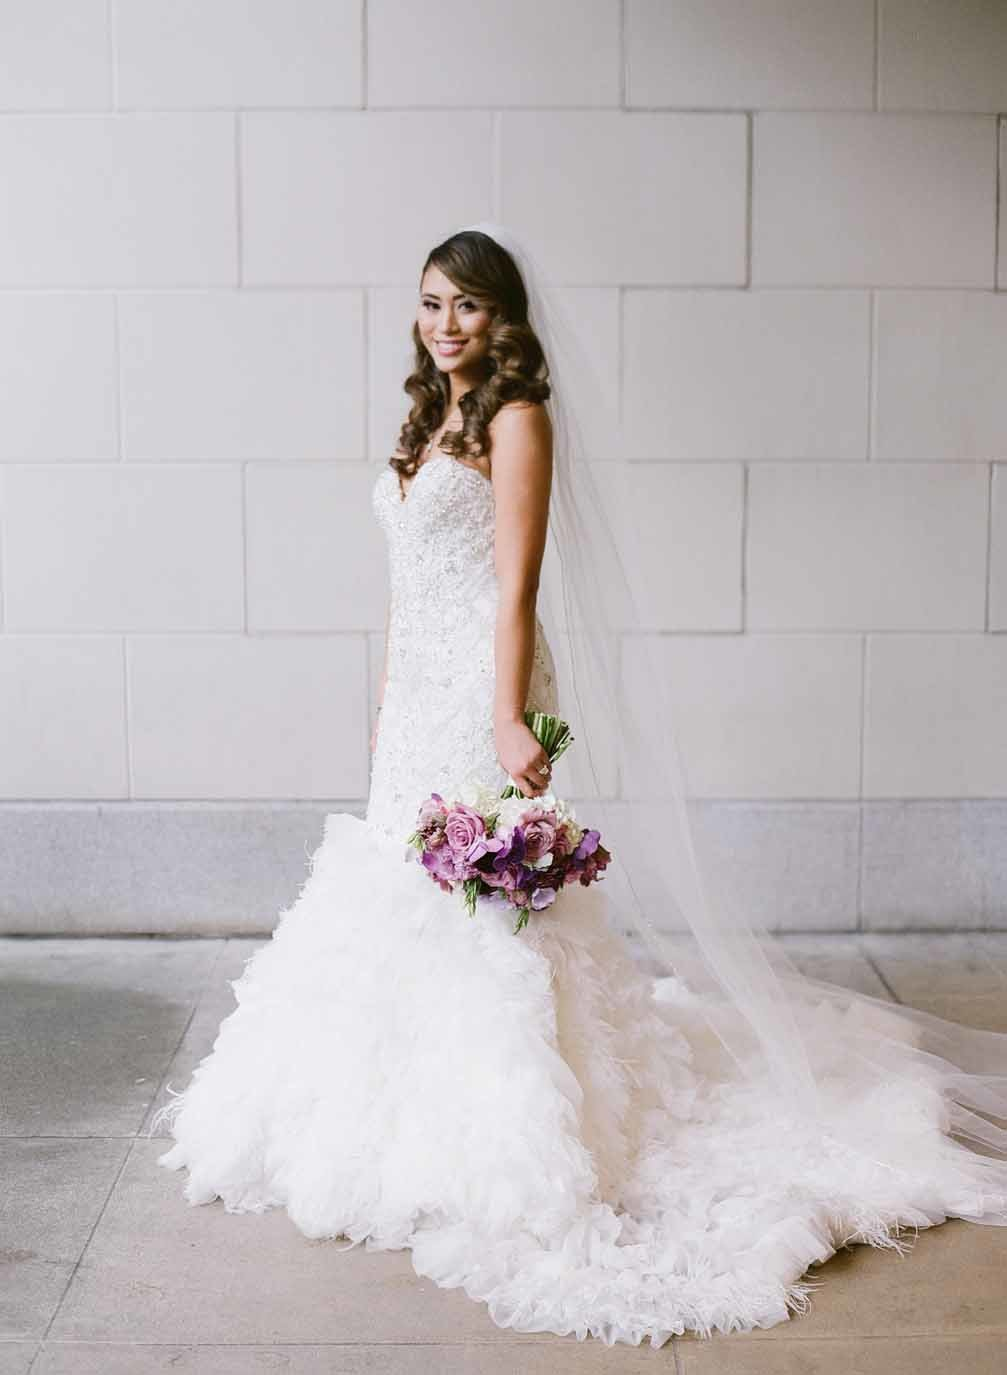 Beautiful bride with purple wedding bouquet